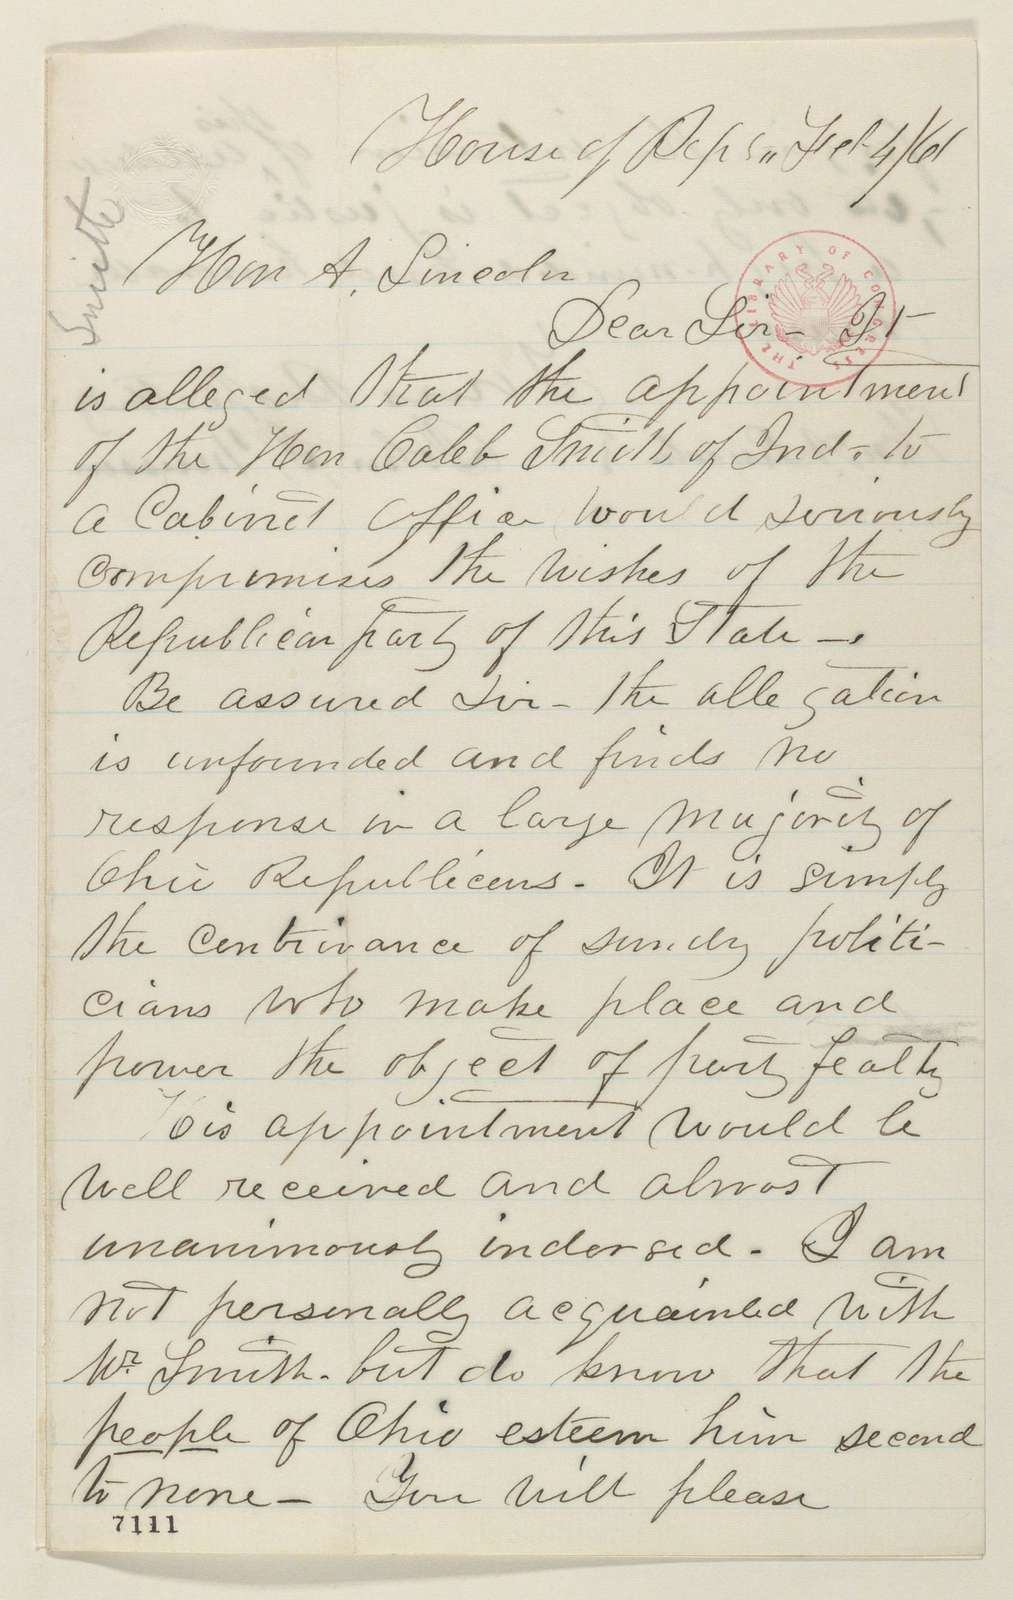 Abraham Lincoln papers: Series 1. General Correspondence. 1833-1916: John J. Musson to Abraham Lincoln, Monday, February 04, 1861 (Recommends Caleb Smith for cabinet)